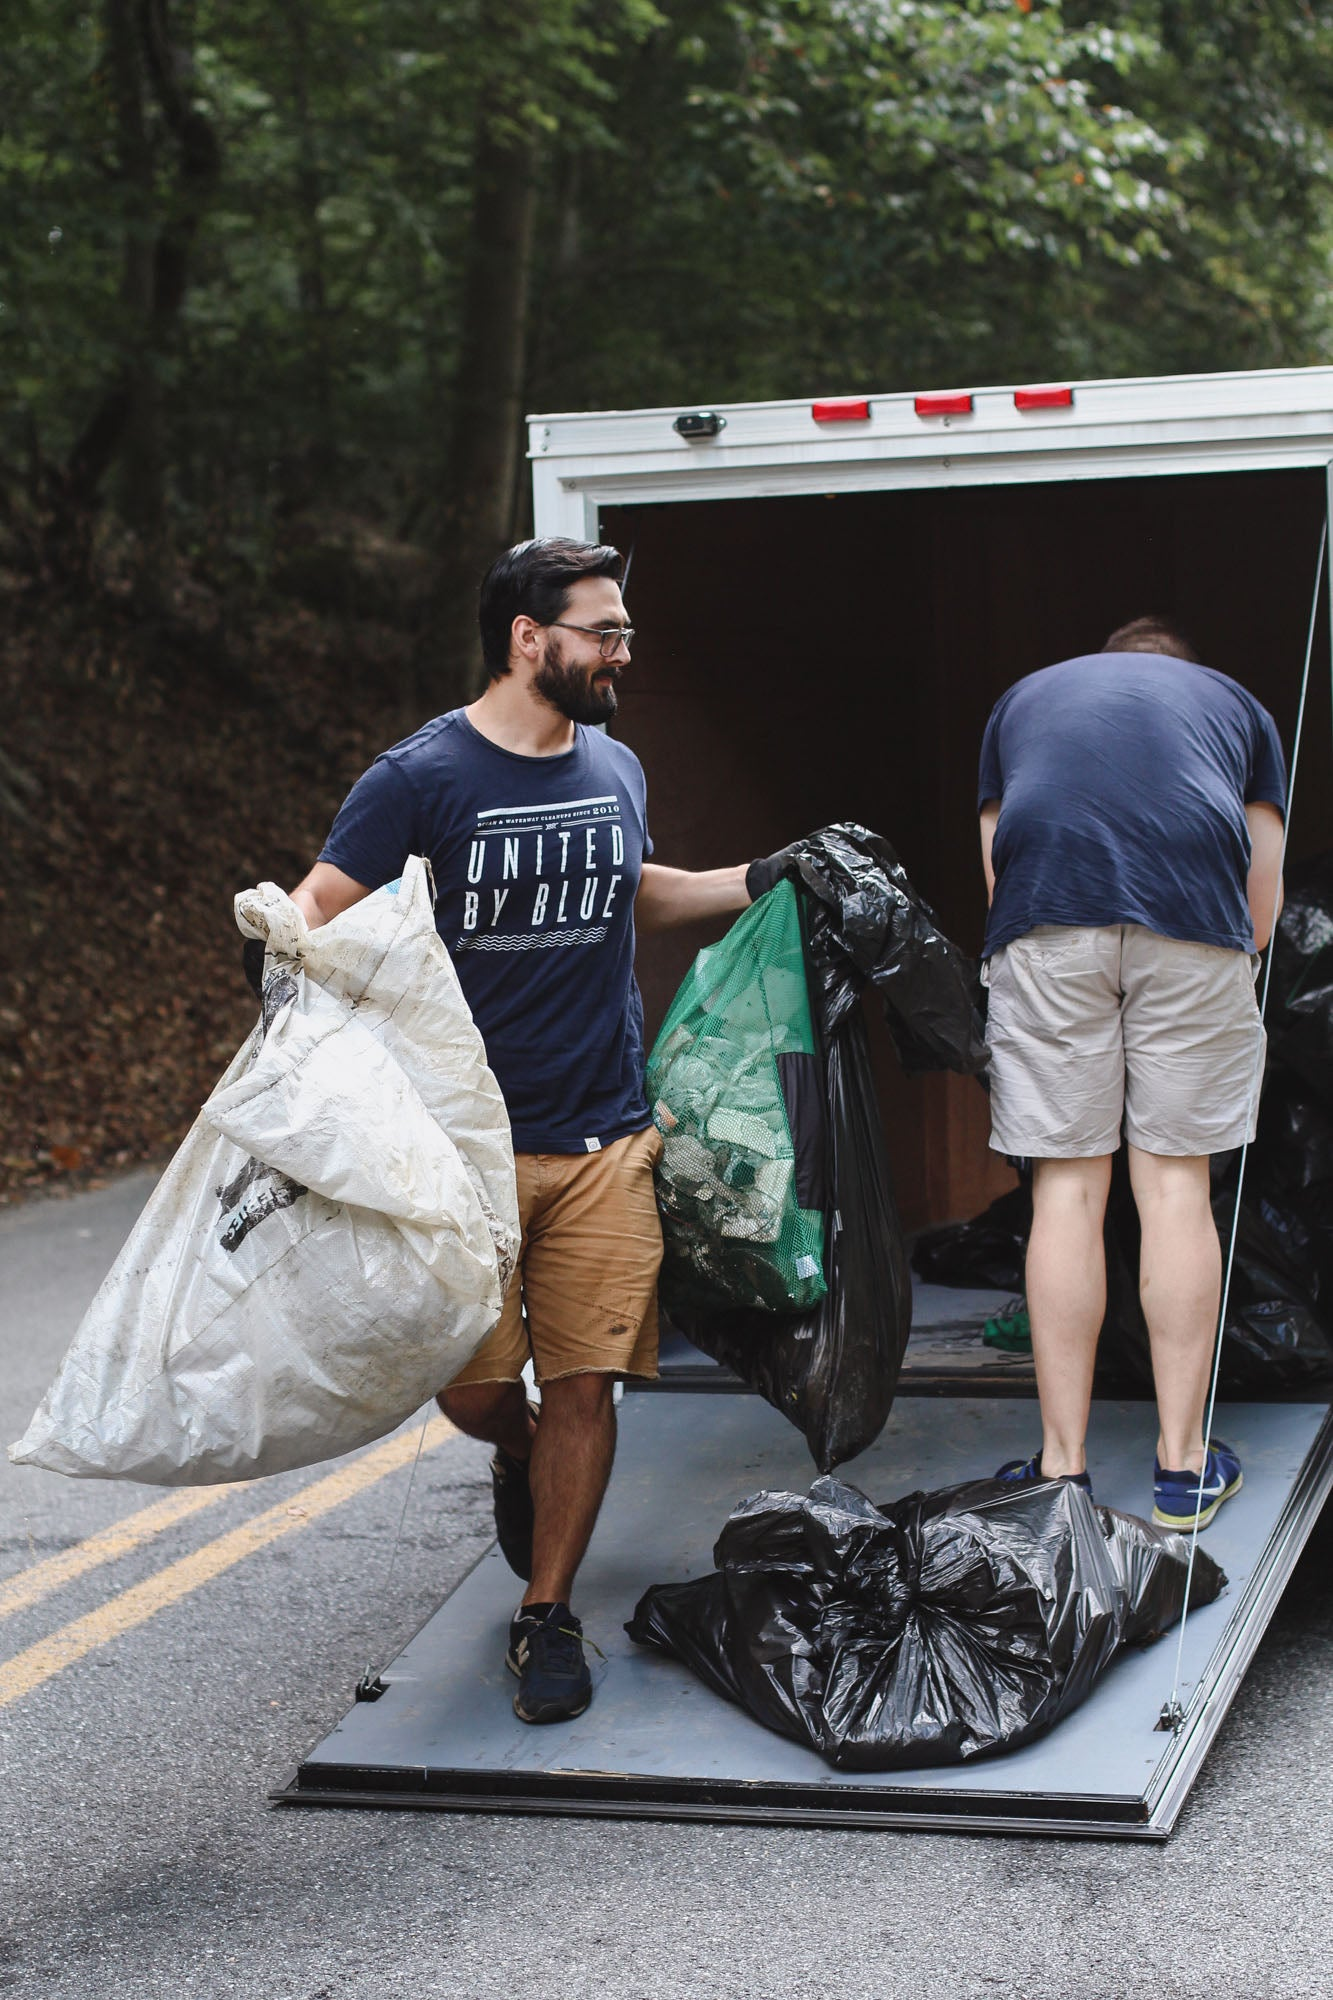 United By Blue's 250,000 lb Cleanup